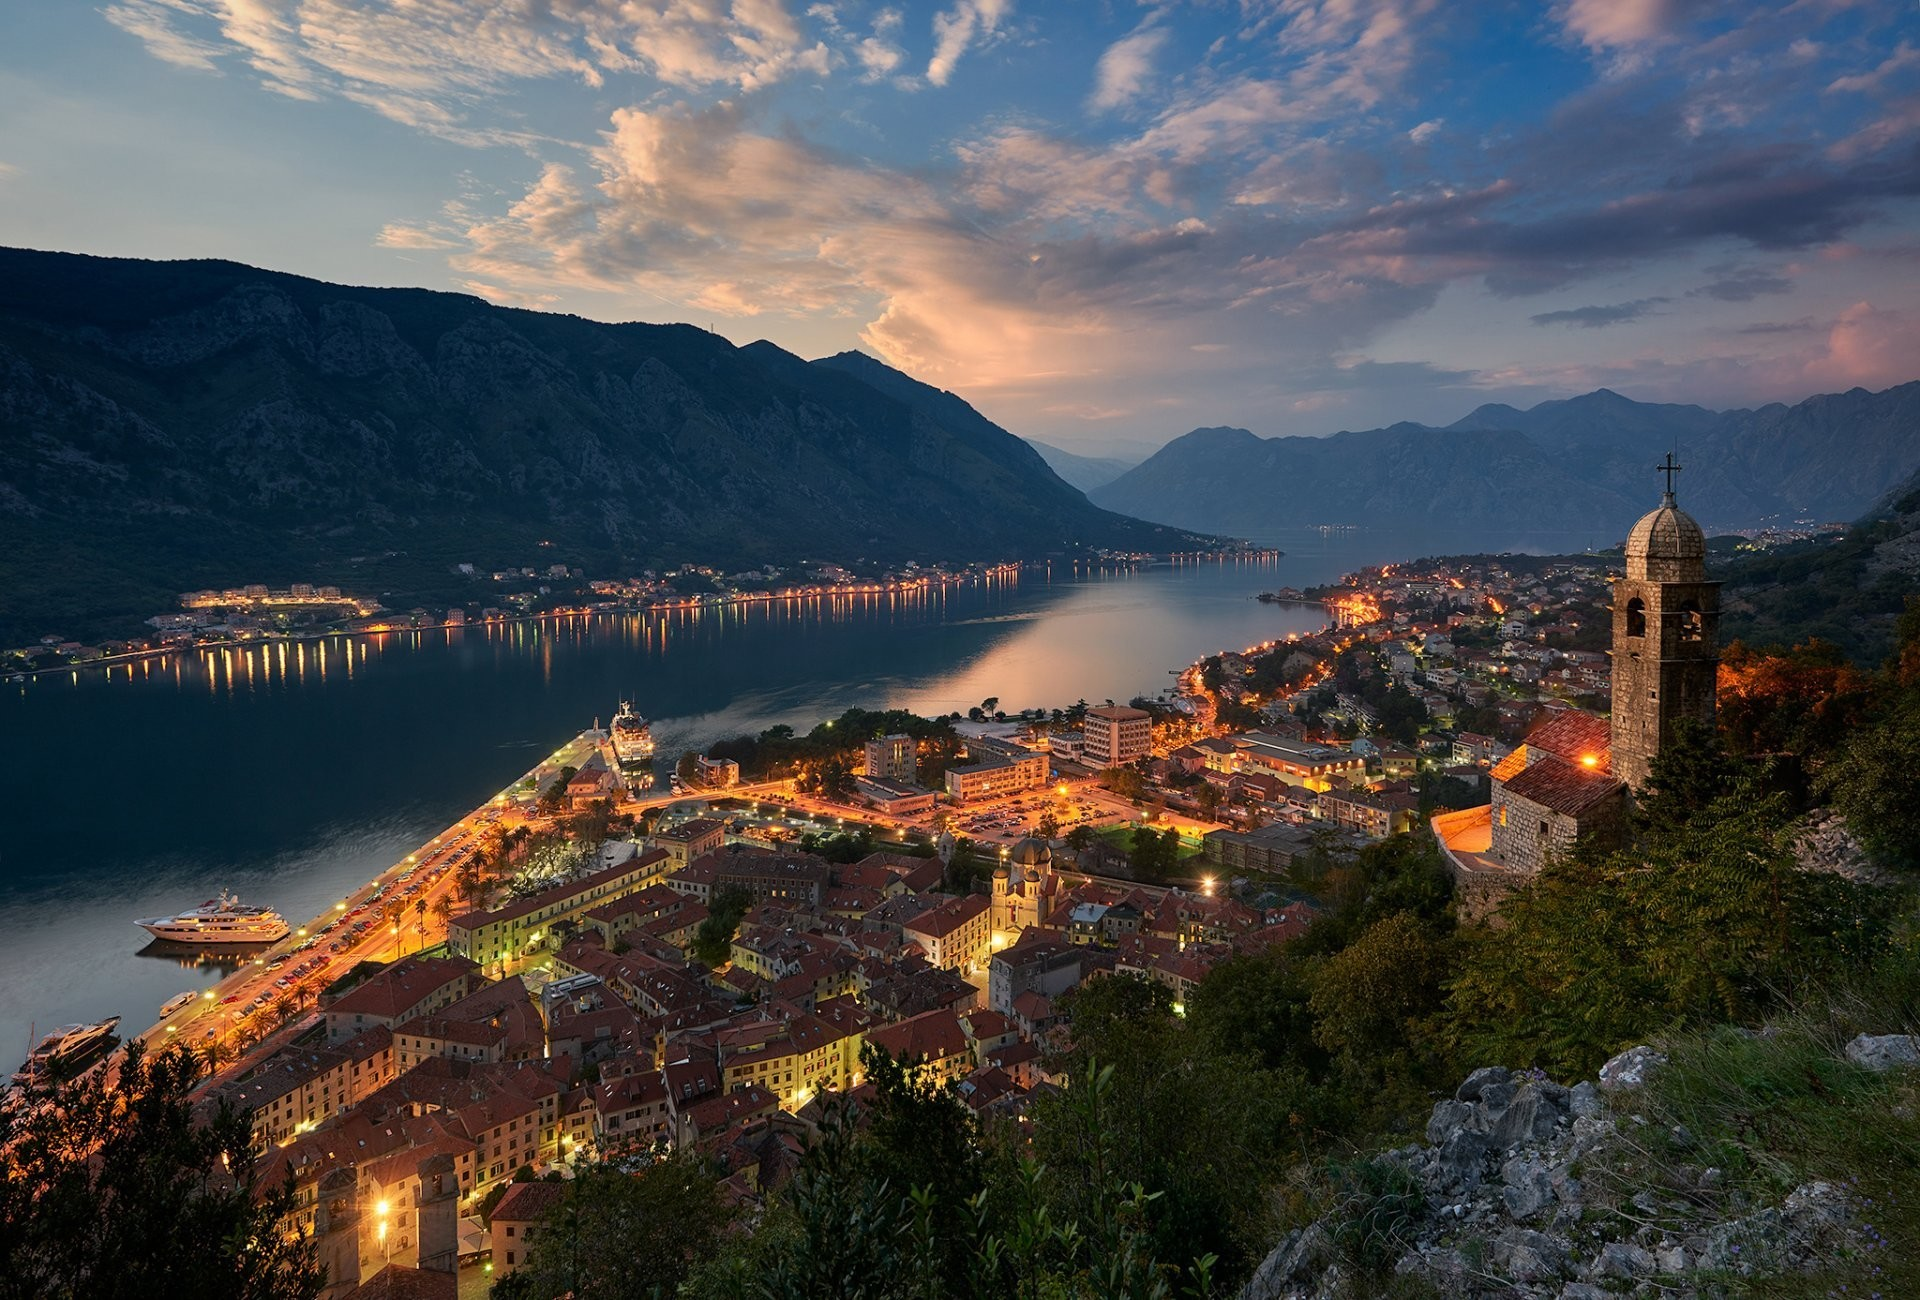 1920x1300 montenegro town which bay of kotor adriatic sea mountain house light church  night